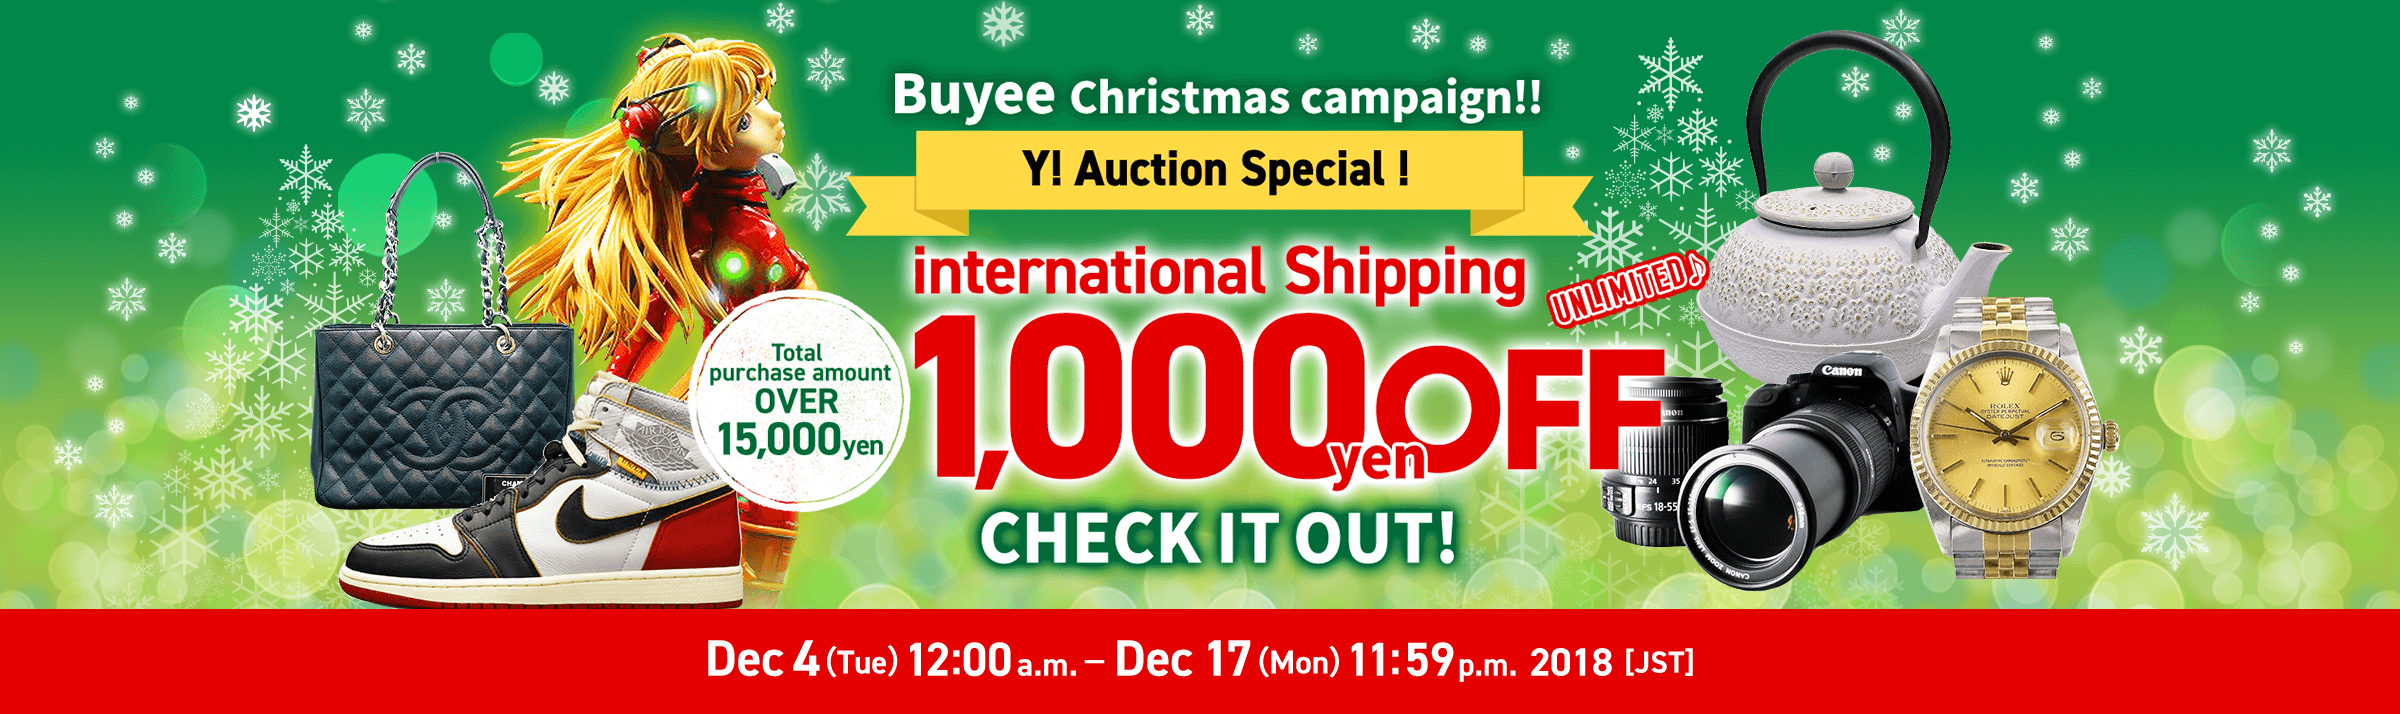 Y! Auction Only Christmas campaign ! International Shipping 1,000 yen OFF!